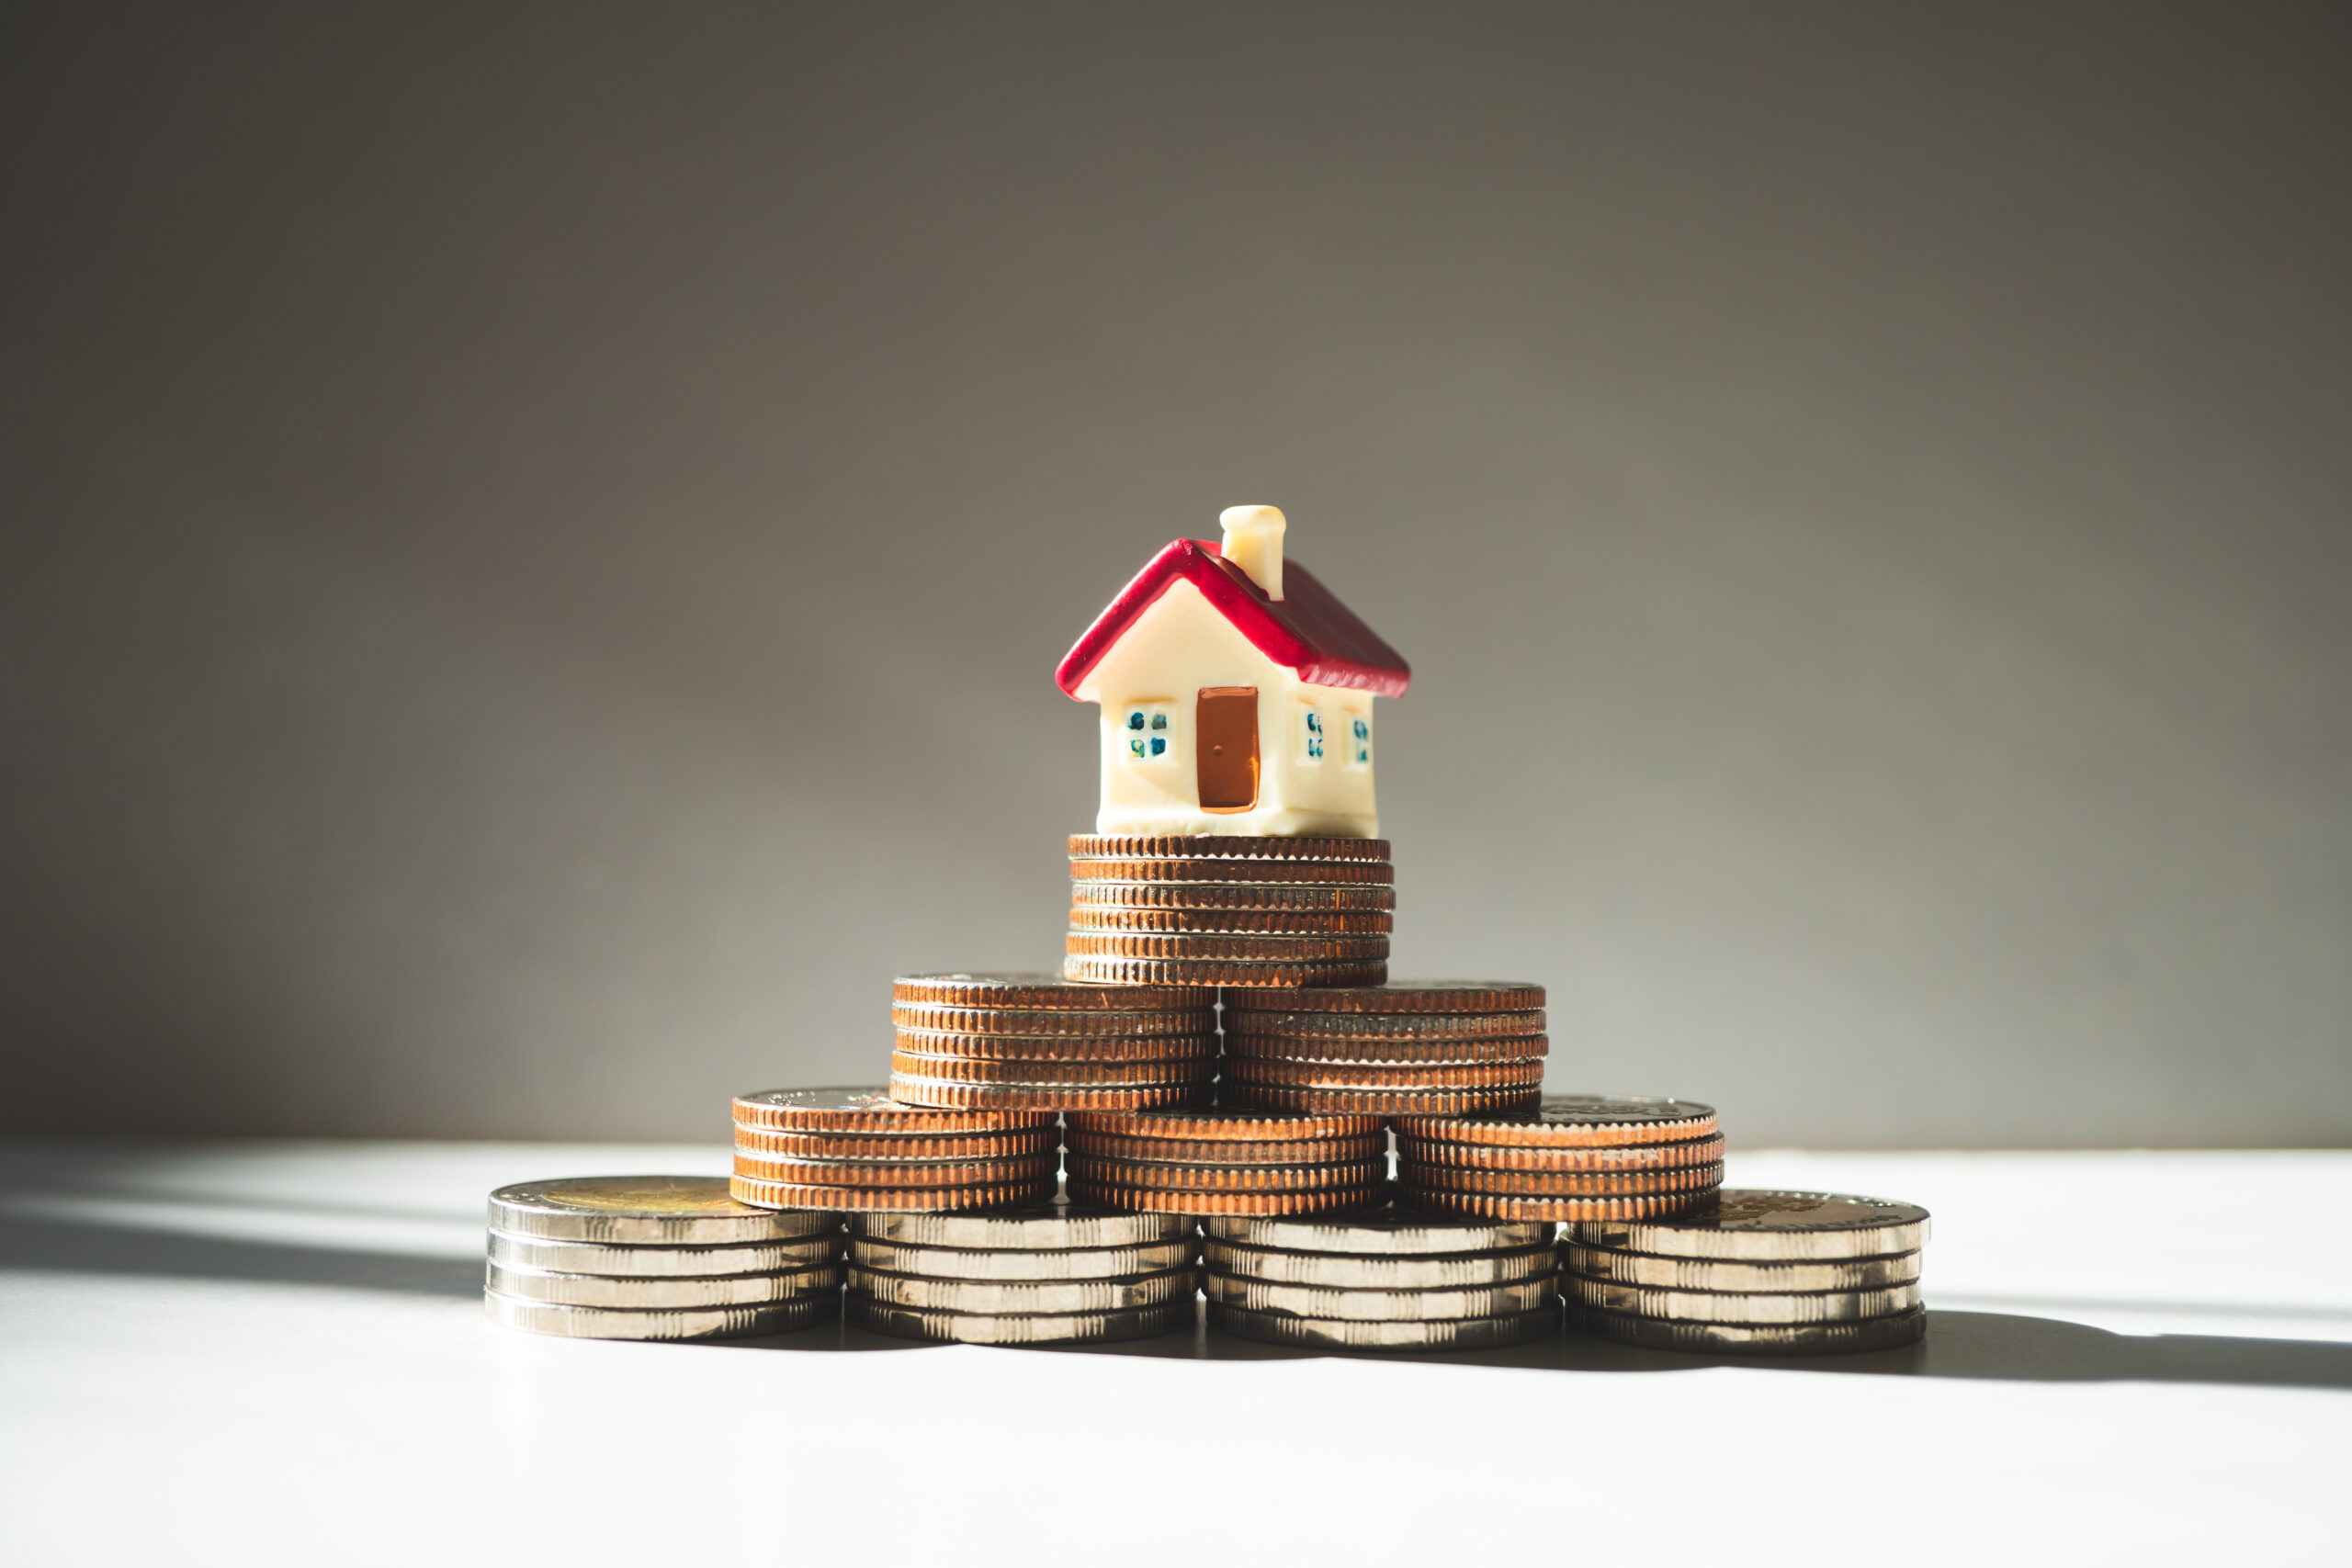 Miniature colorful house on stack coins using as propert